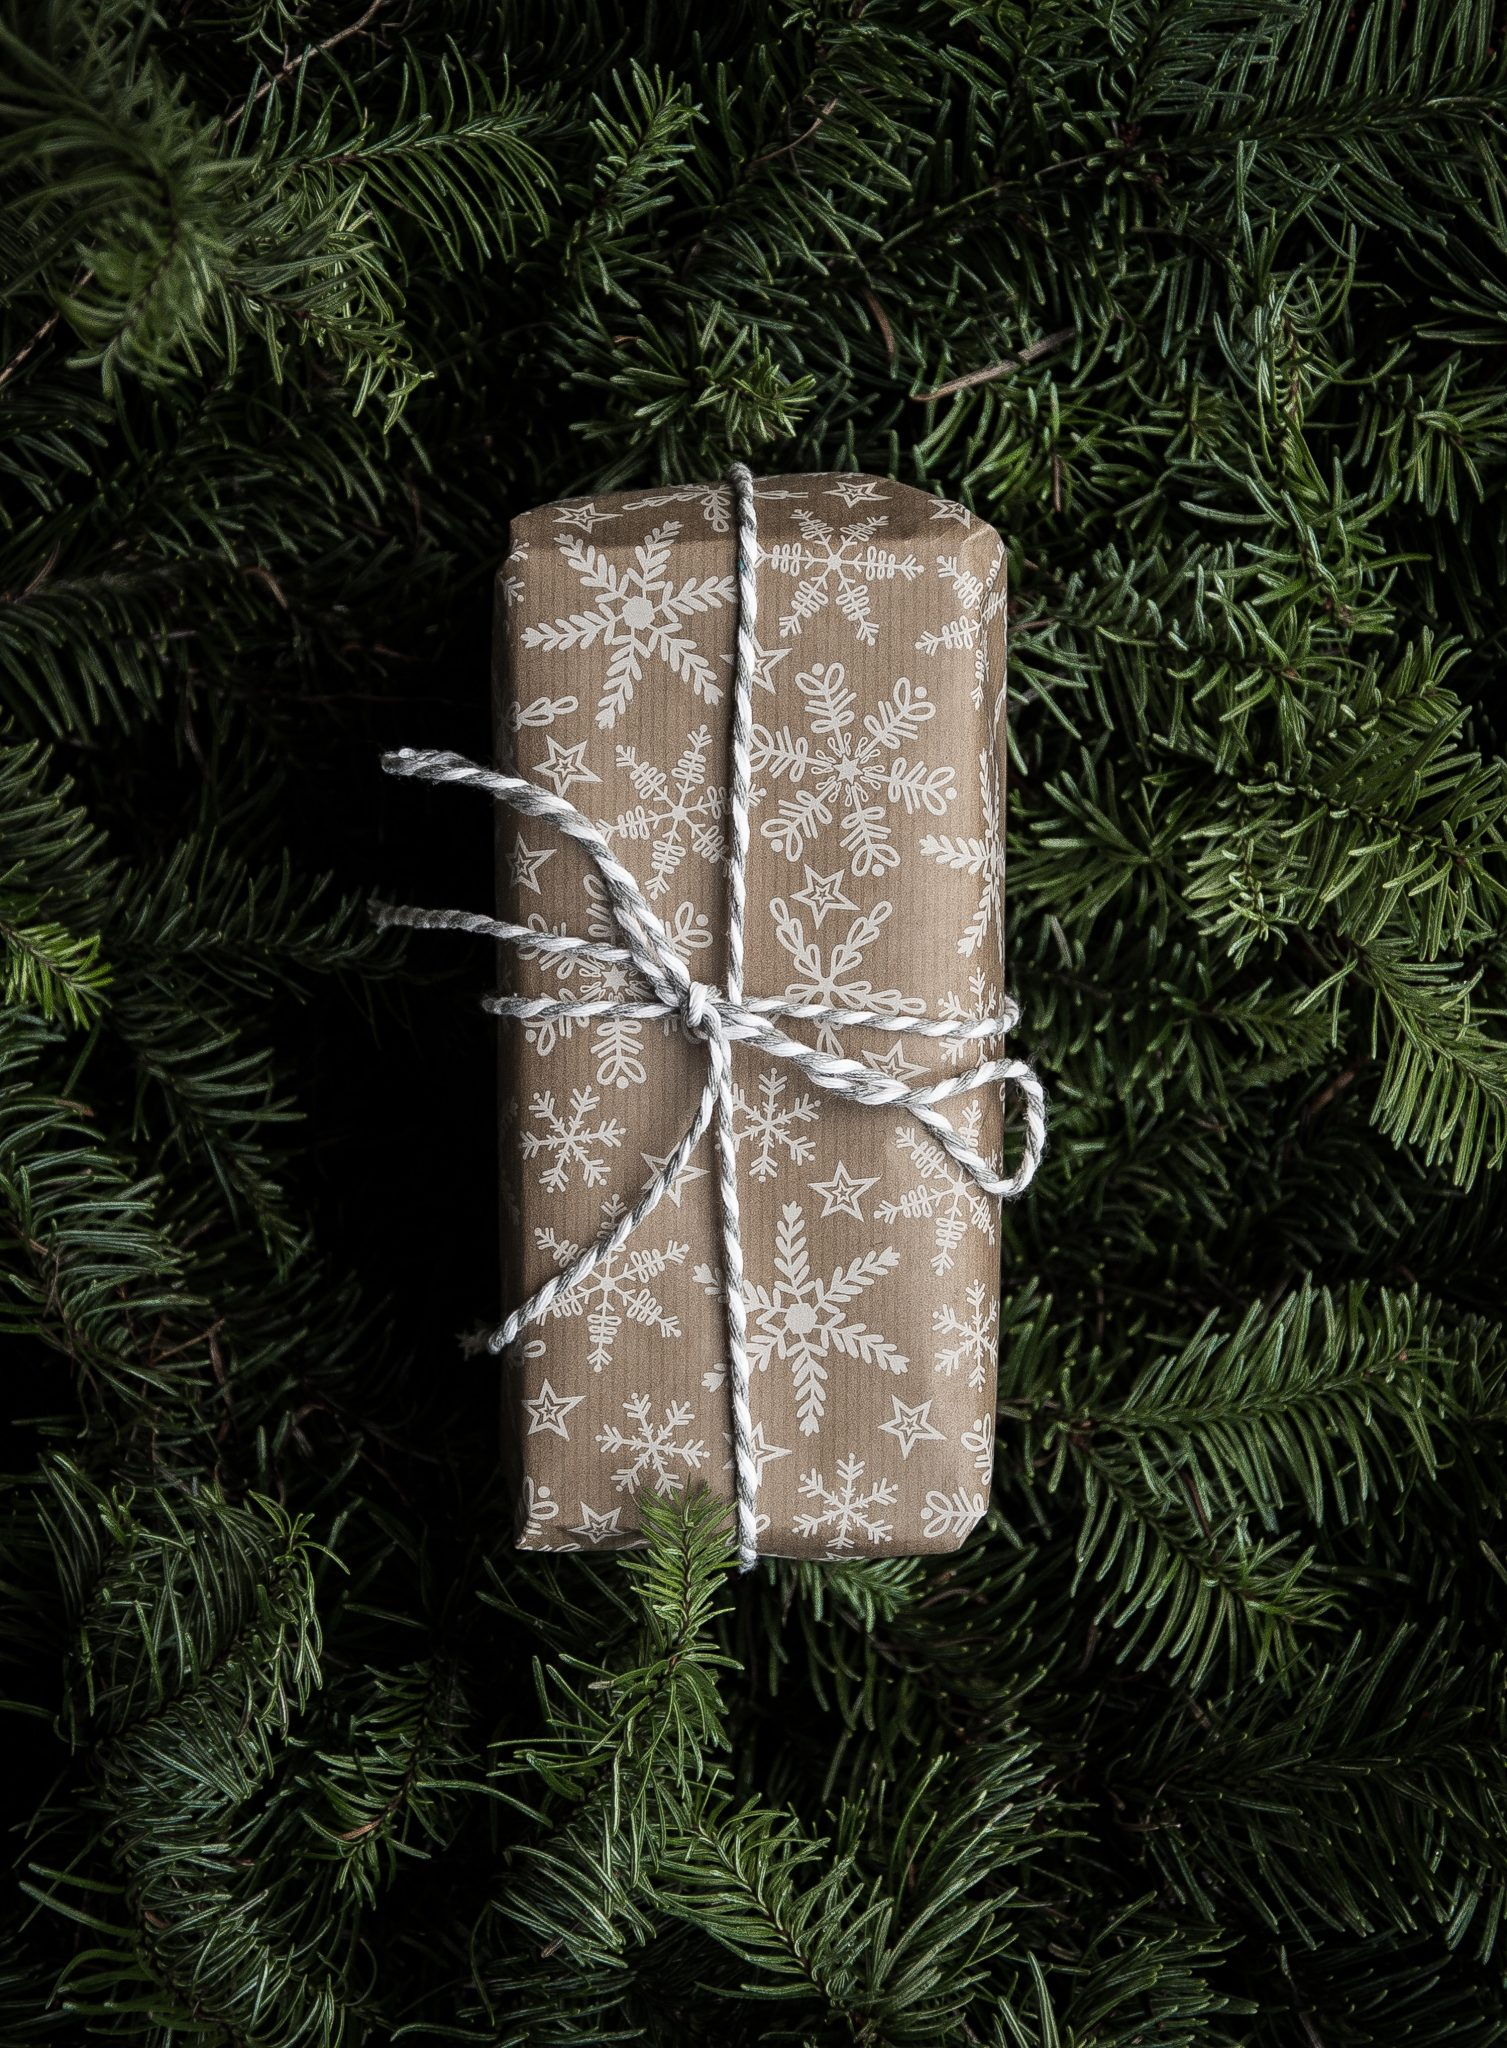 give a gift to beat holiday stress